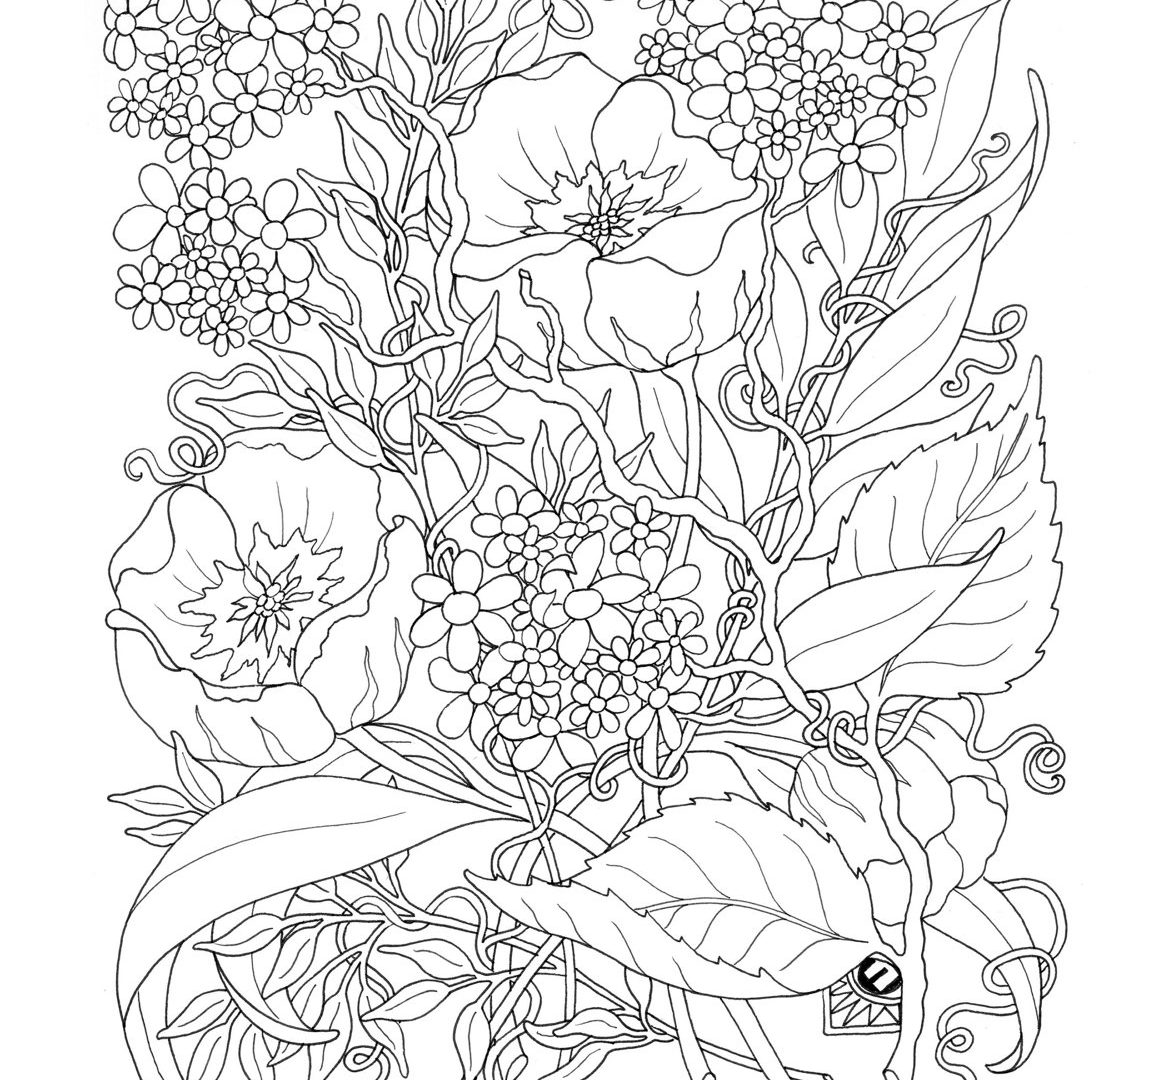 1159x1080 Difficult Coloring Pages For Adults To Download And Print Free